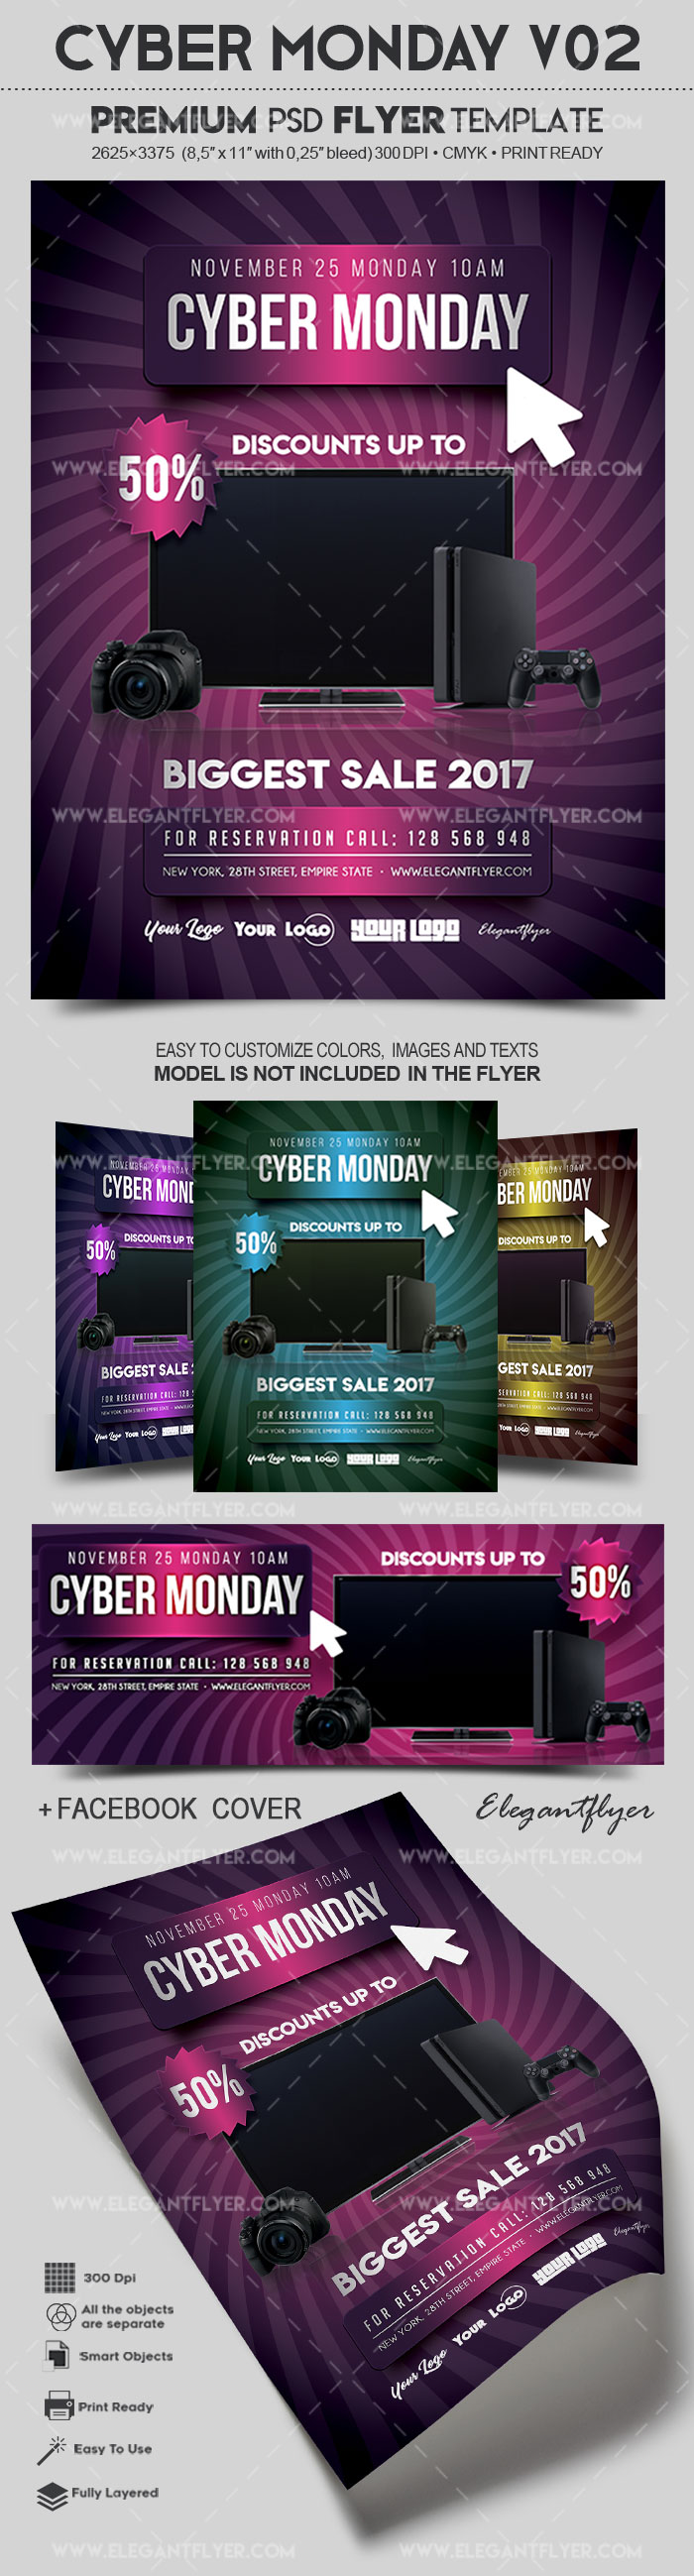 Cyber Monday V02 – Flyer PSD Template